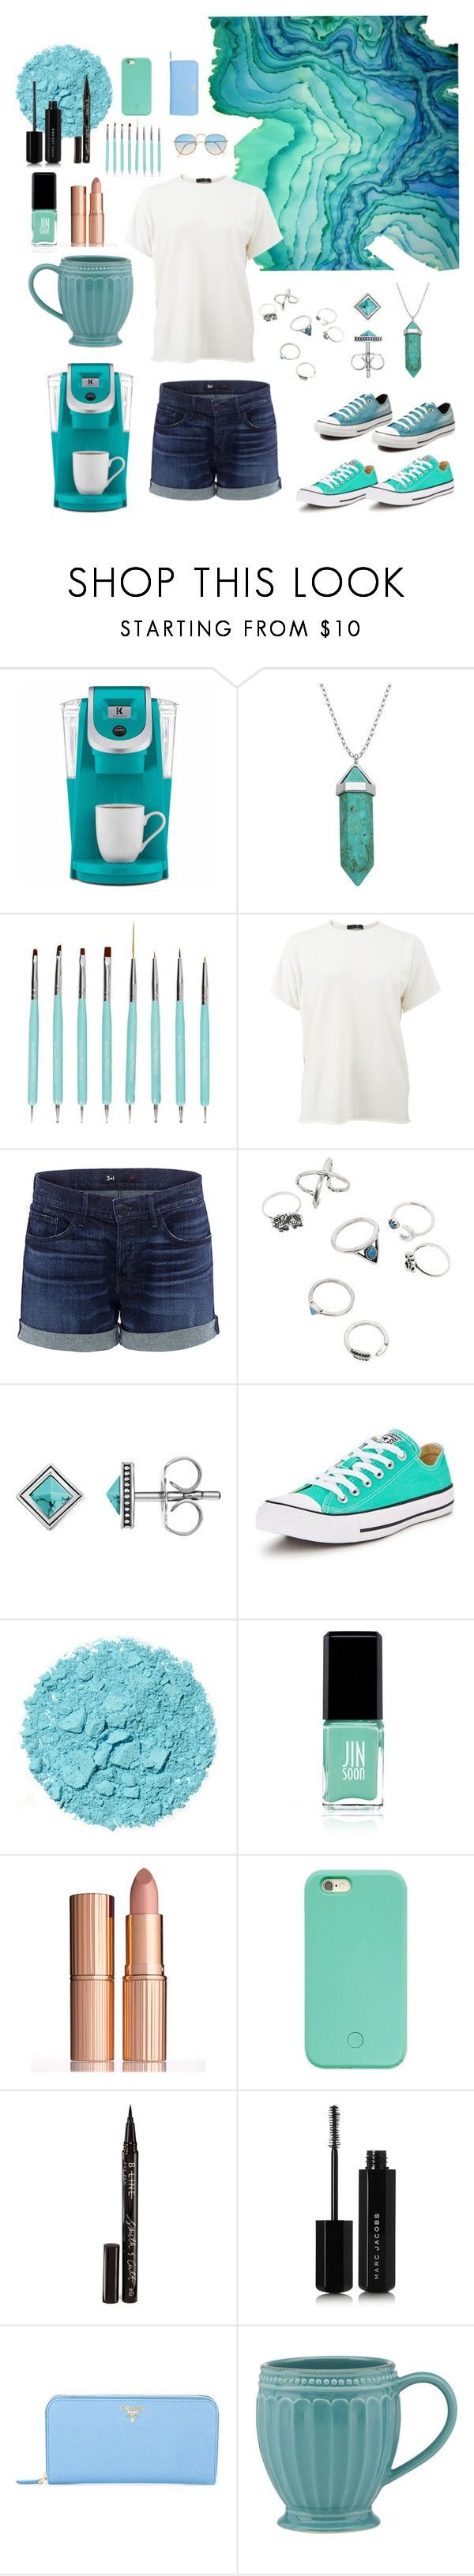 """""""Blues and Greens Bruh"""" by howdyingboo ❤ liked on Polyvore featuring Keurig, Lord & Taylor, Converse, The Row, 3x1, Thomas Sabo, Jin Soon, Charlotte Tilbury, Forever 21 and Smith & Cult"""